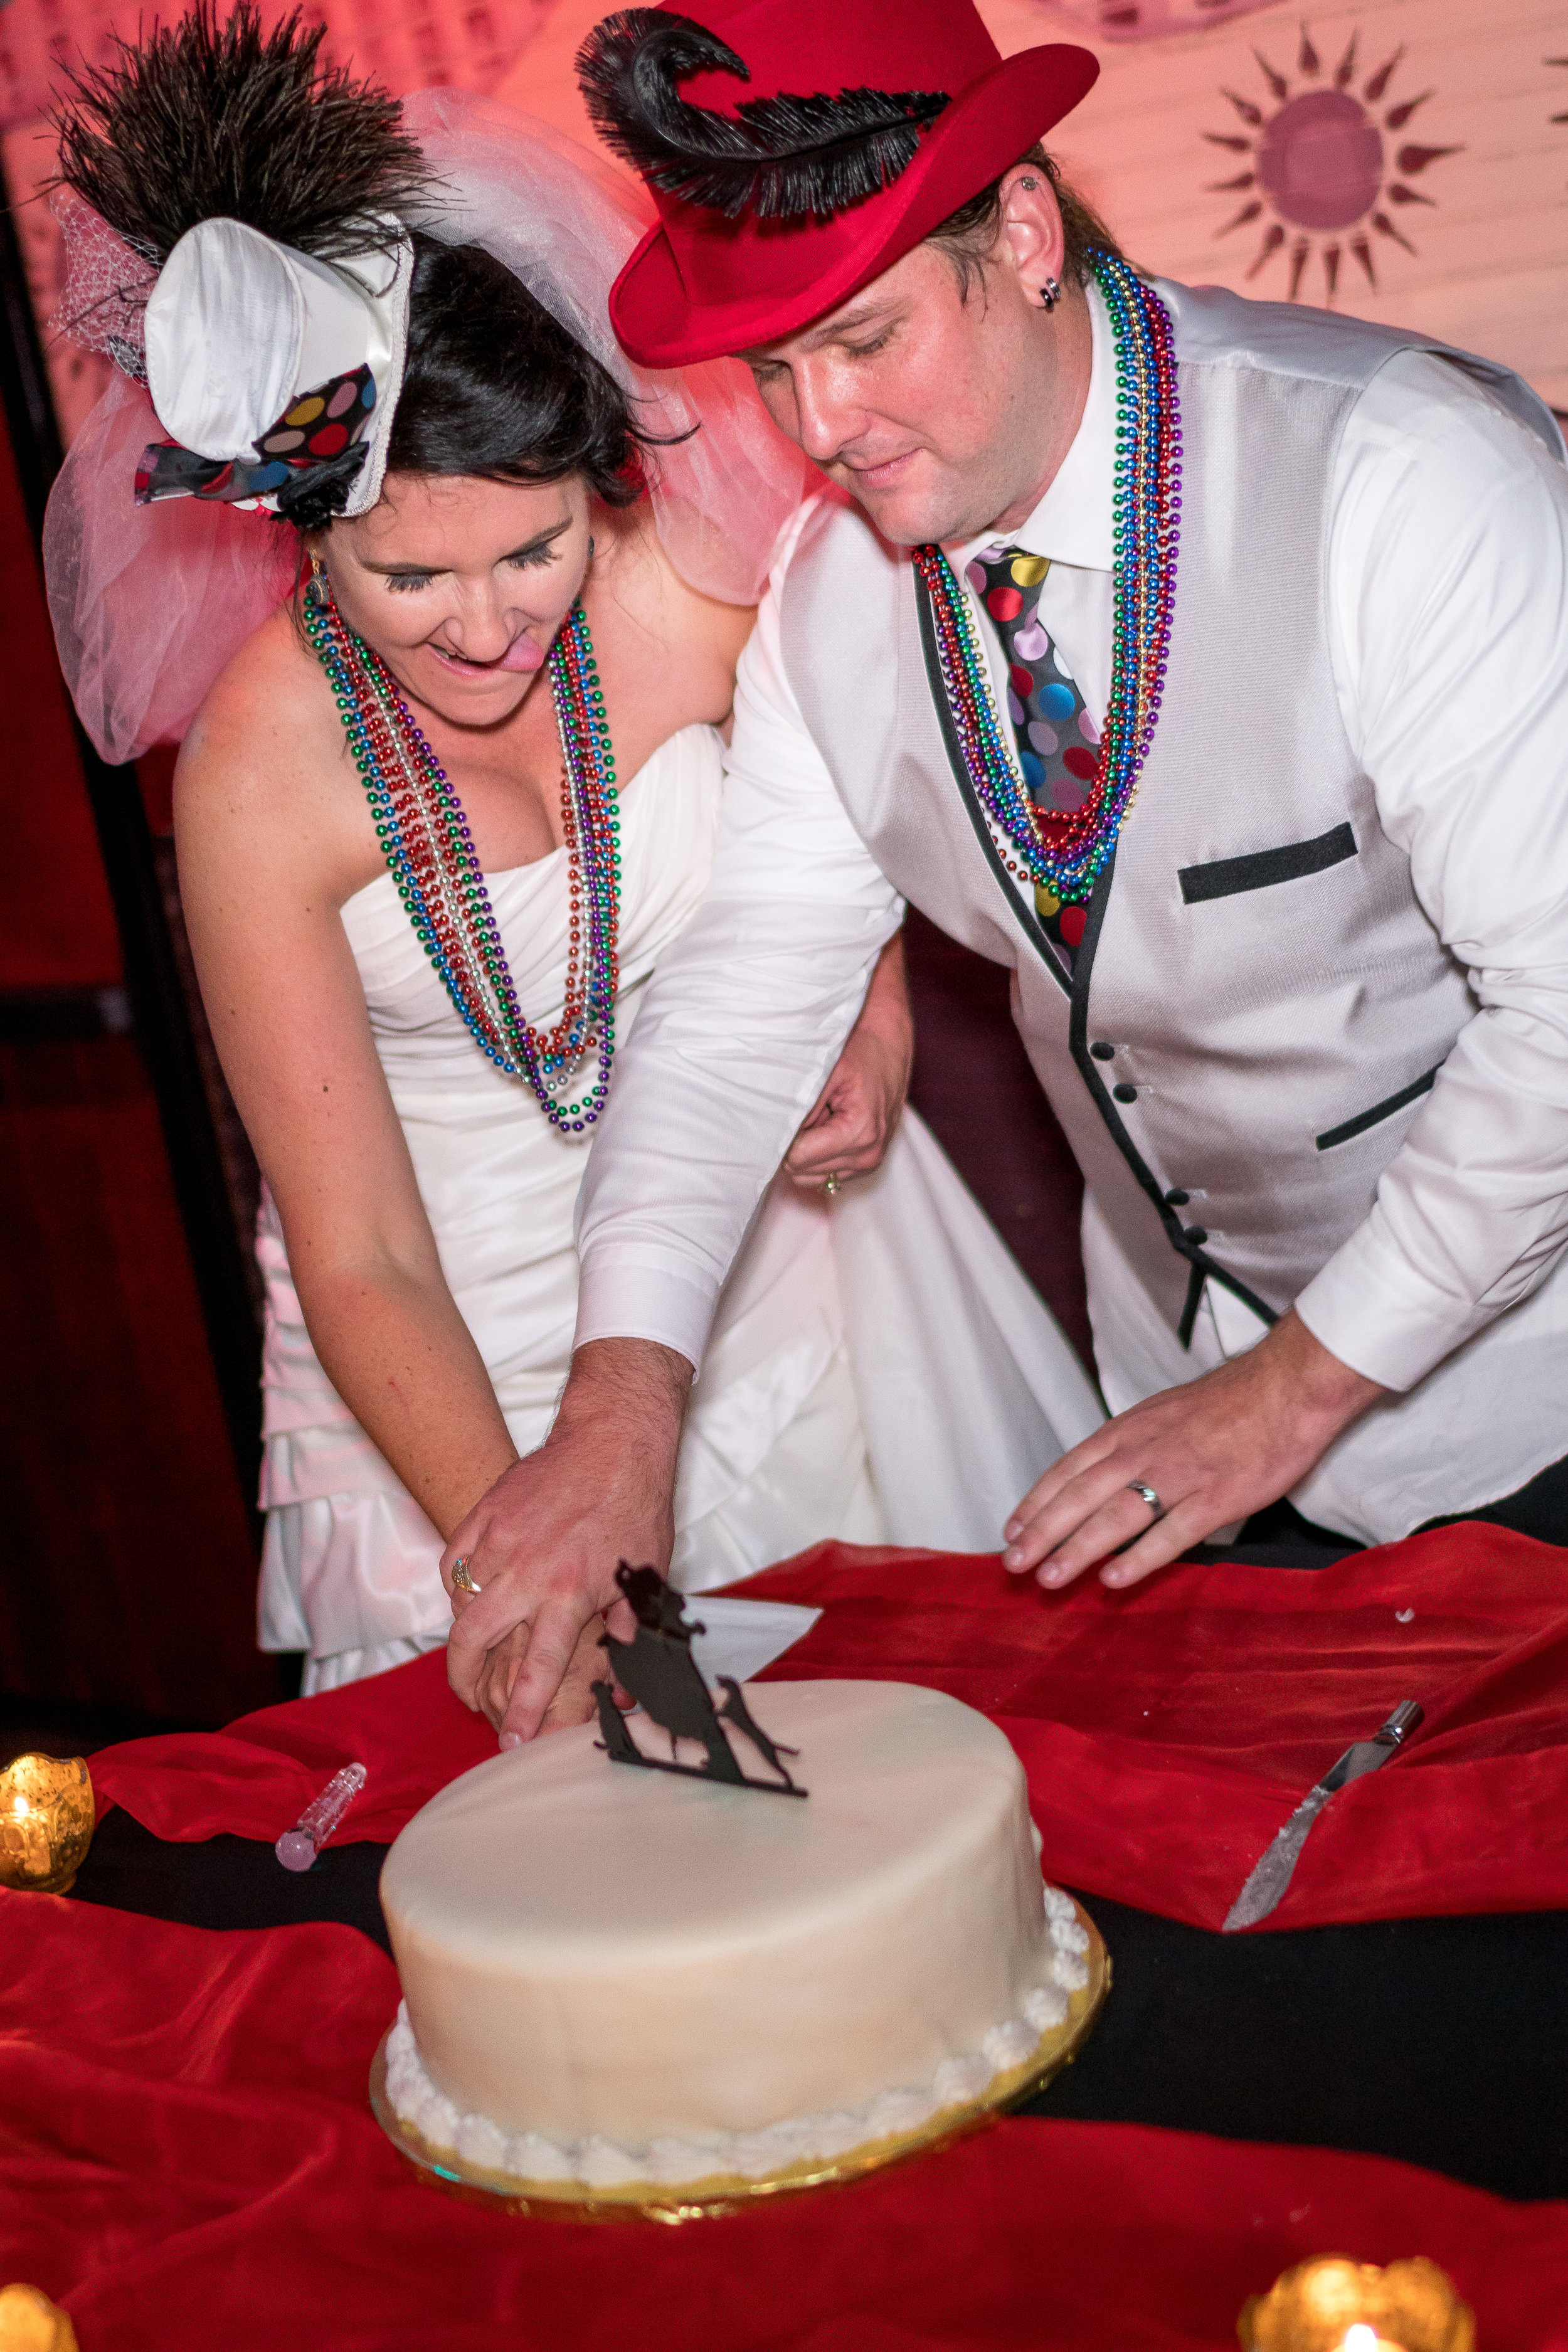 image of bride and groom cutting wedding cake by pensacola photographer adam cotton